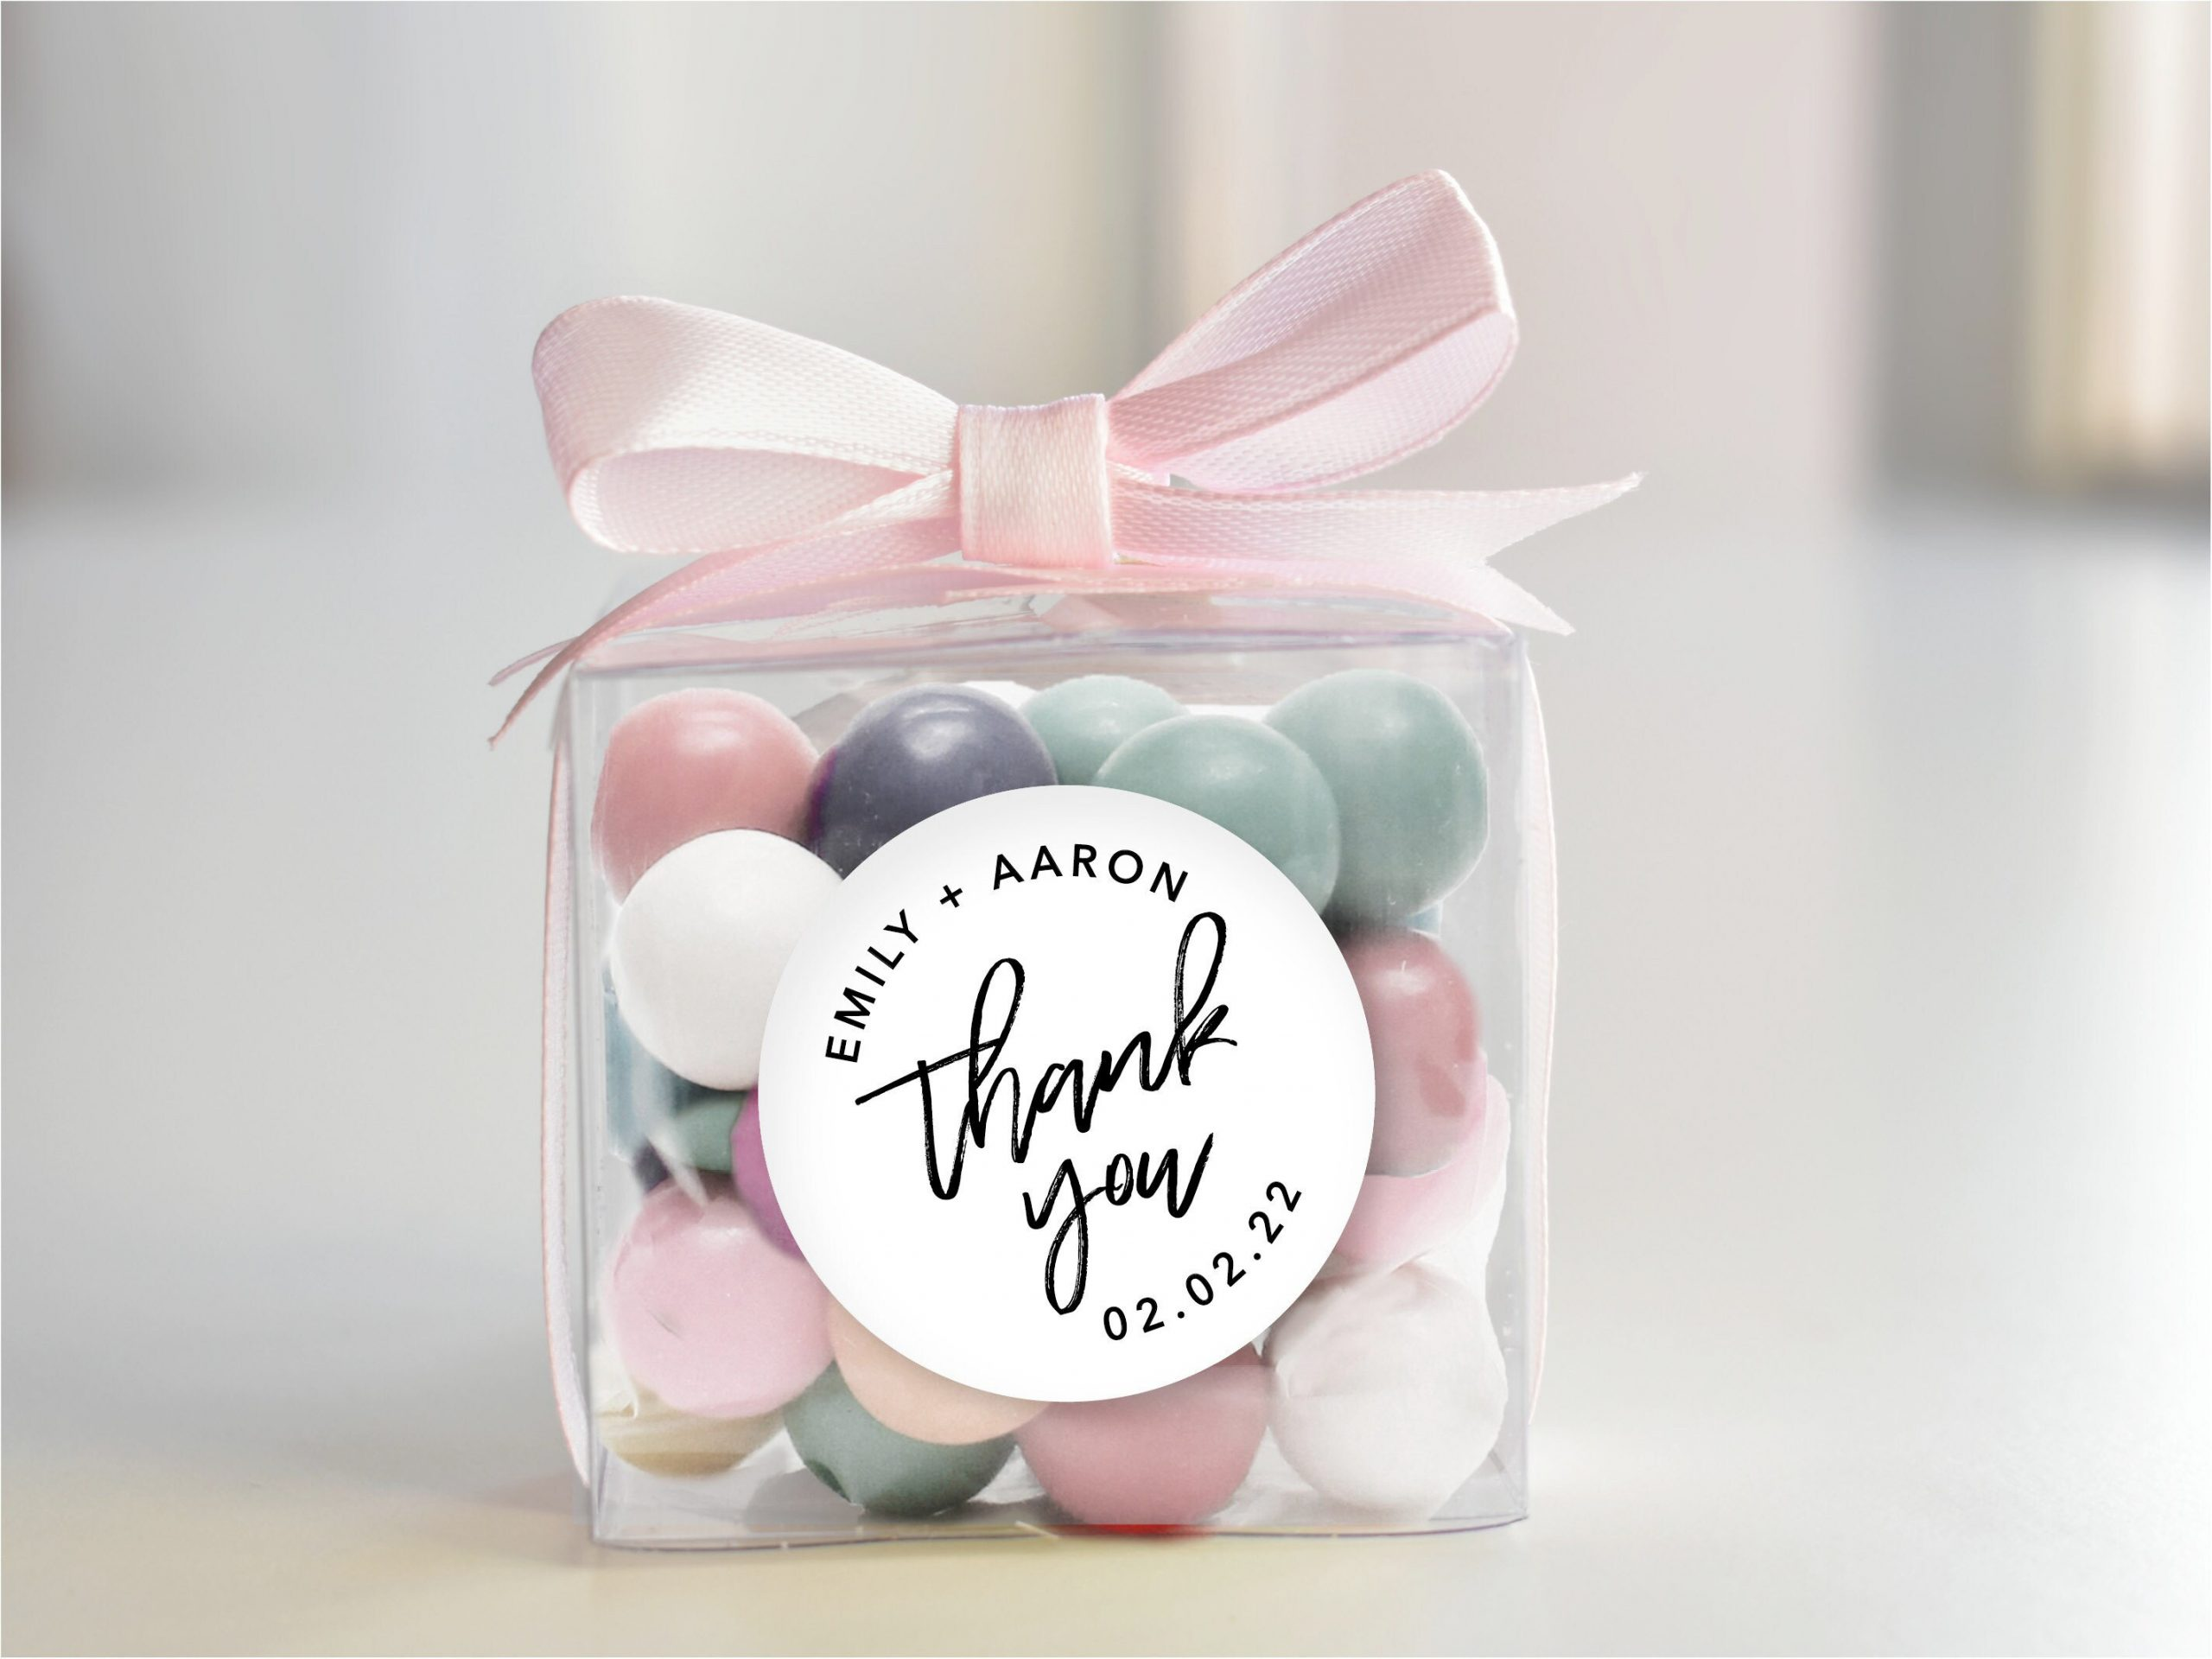 30 Clear Boxes For Your Wedding, Party Or Event With Message | Love Is Sweet Calligraphy Diy Favour Kit Macaron Box Modern Wedding